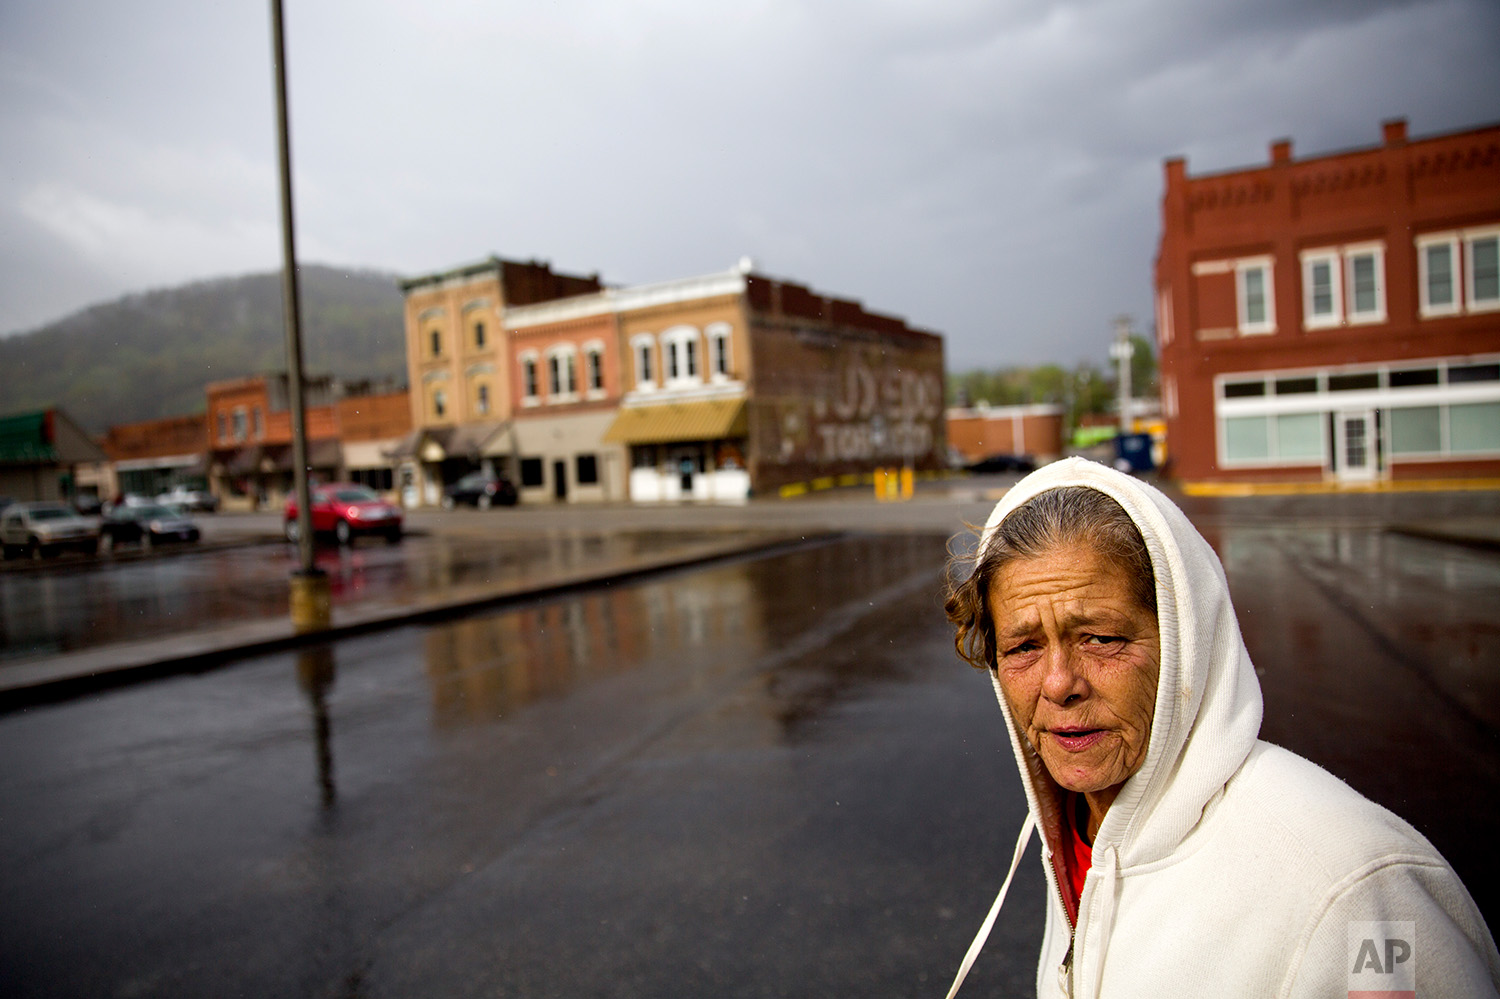 Tammy Perry, 53, walks down a street in LaFollette, Tenn., where she is currently staying with an older man after getting out of jail, Monday, April 23, 2018. Perry still struggles with drug addiction and says she exchanges sex for drugs or money to support her addiction. (AP Photo/David Goldman)